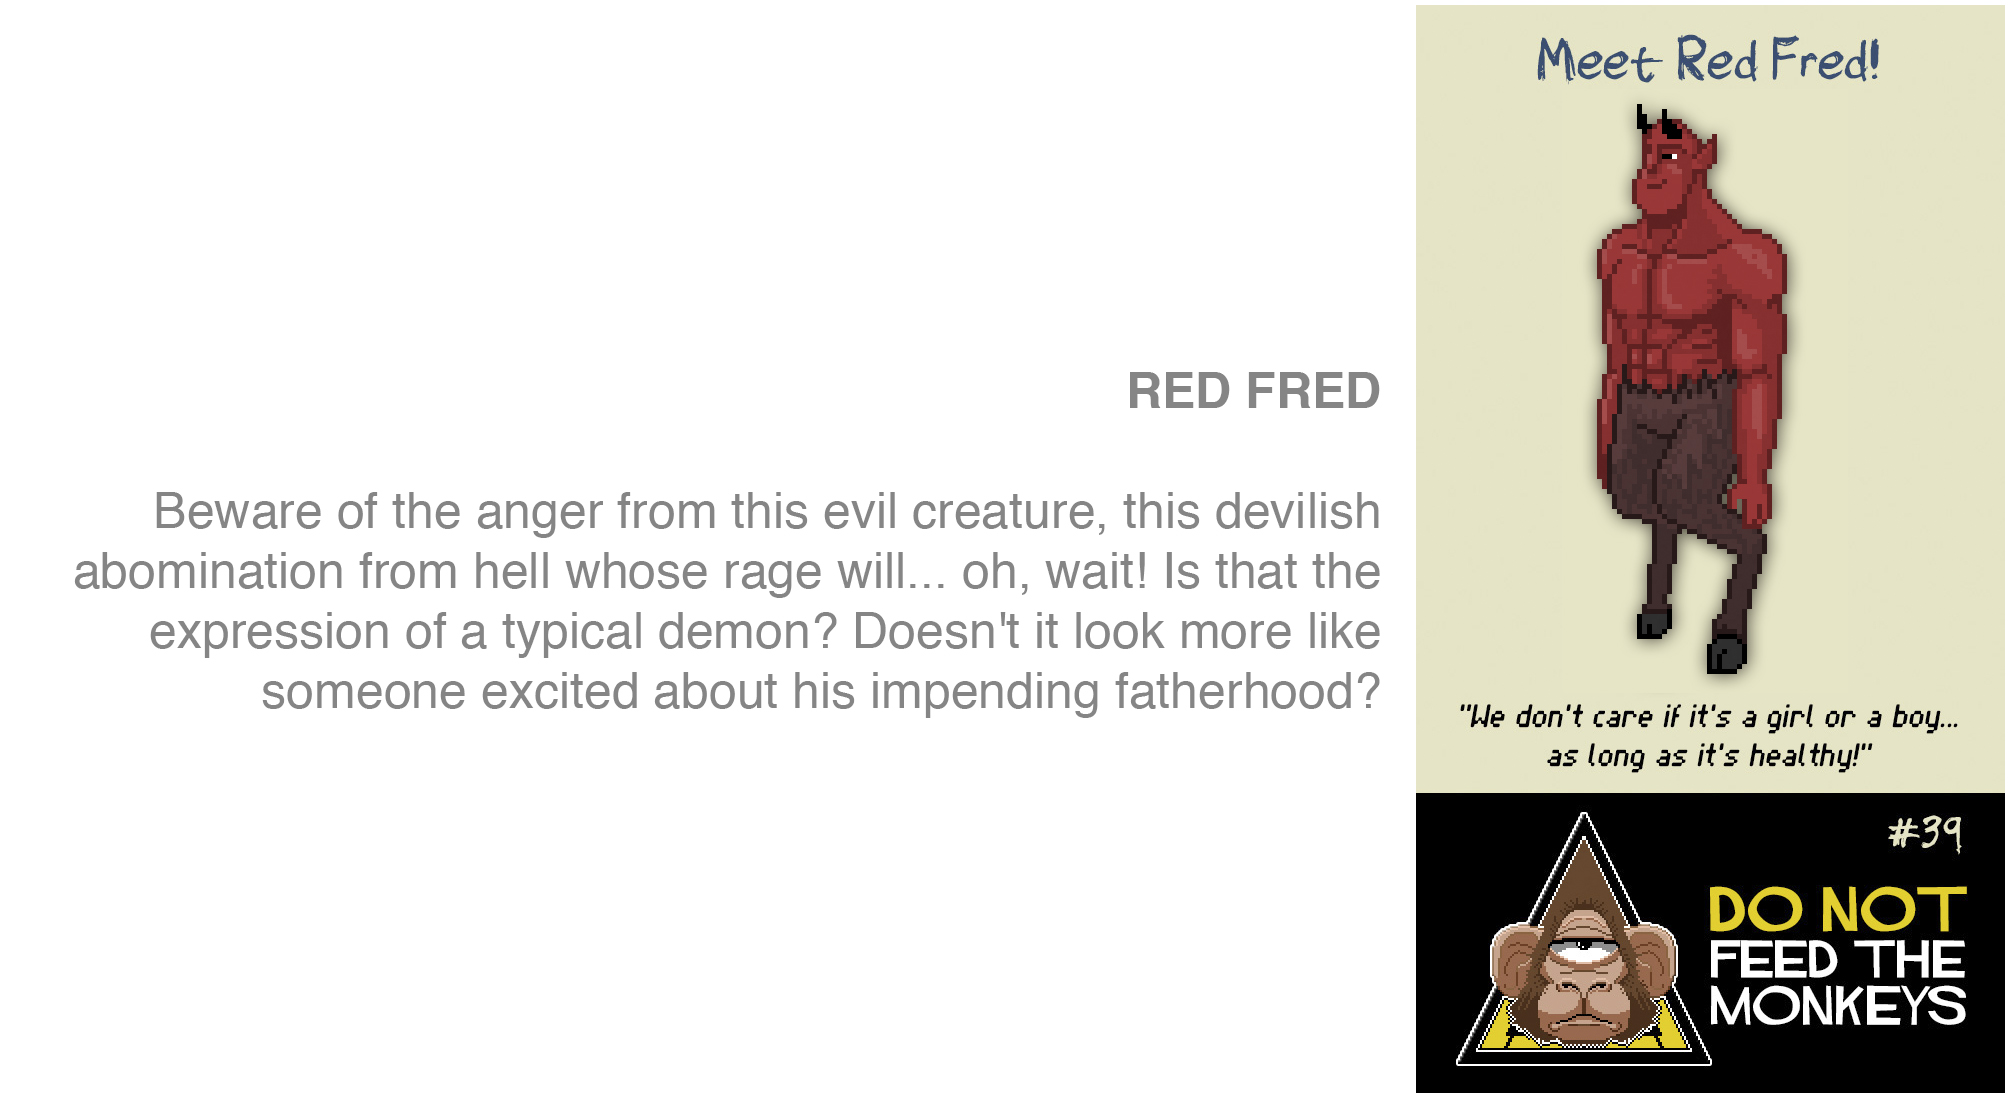 Red Fred